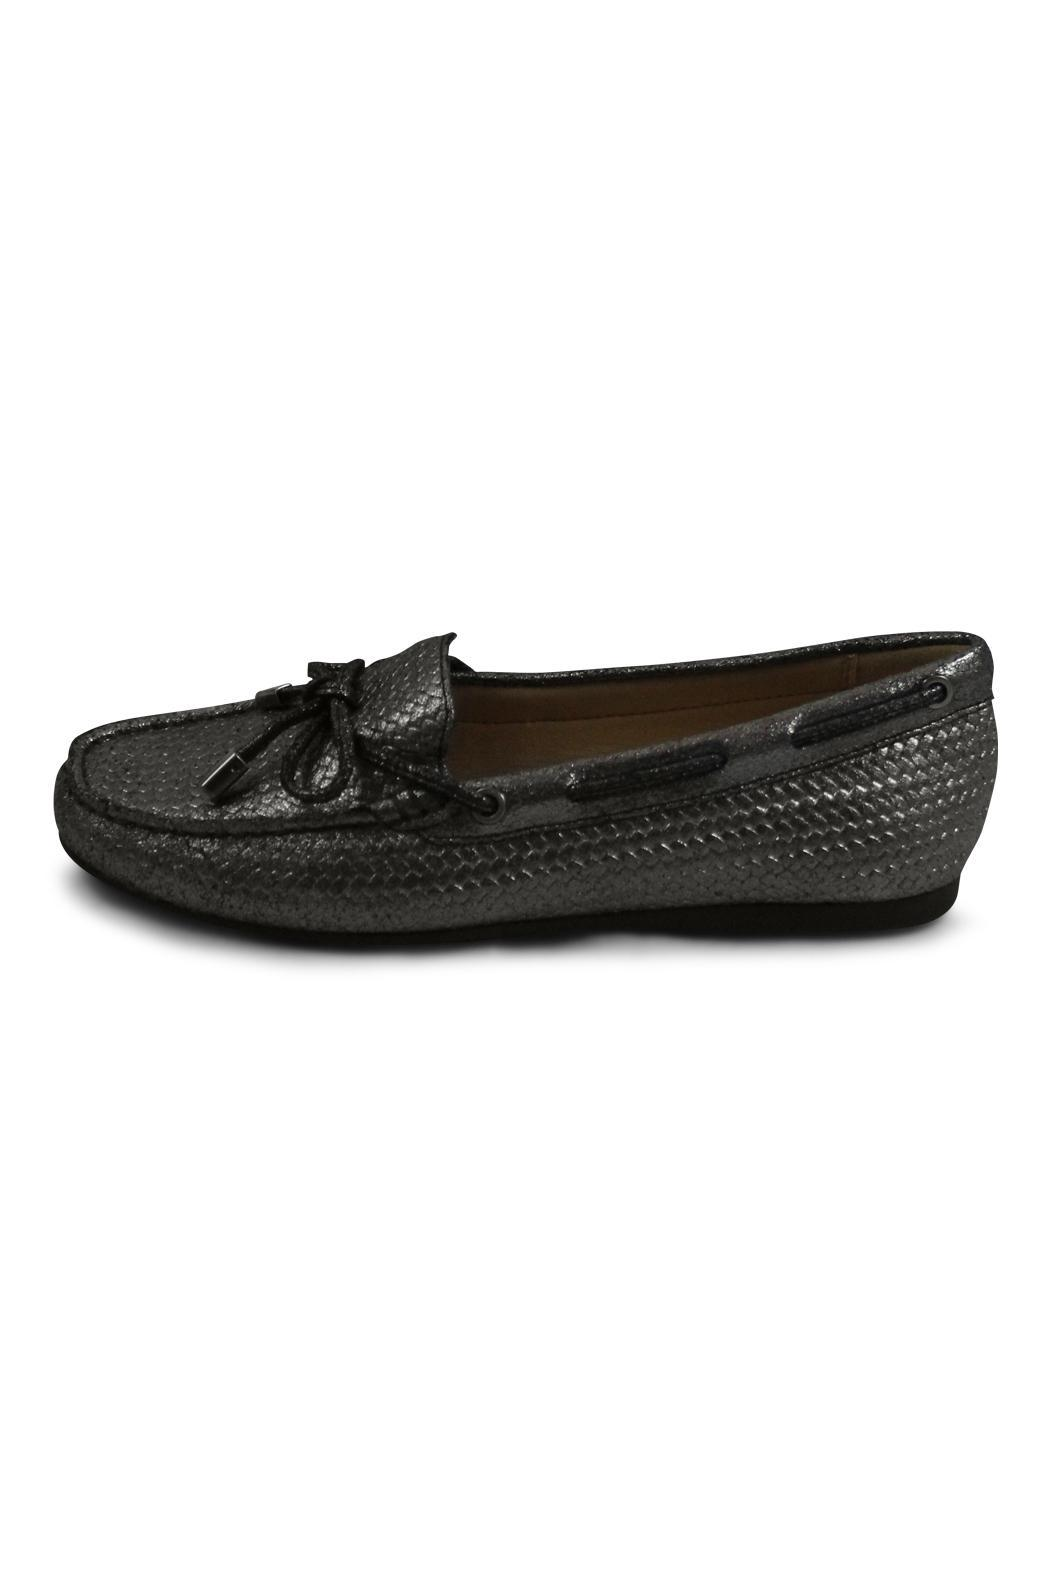 Michael Kors Silver Moc Loafer - Front Cropped Image